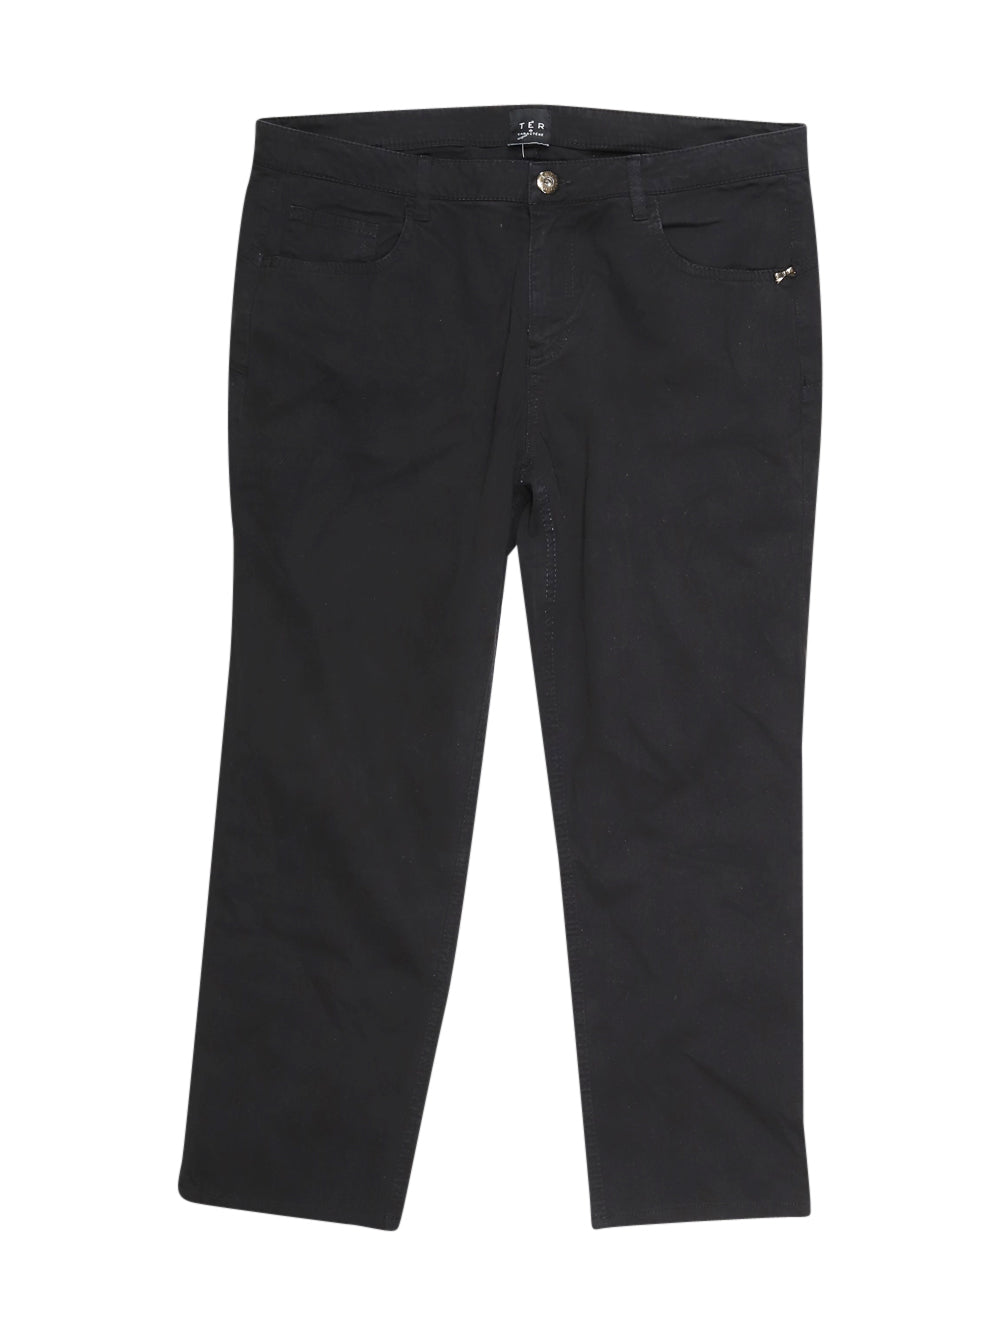 Front photo of Preloved Caractère Black Woman's trousers - size 12/L